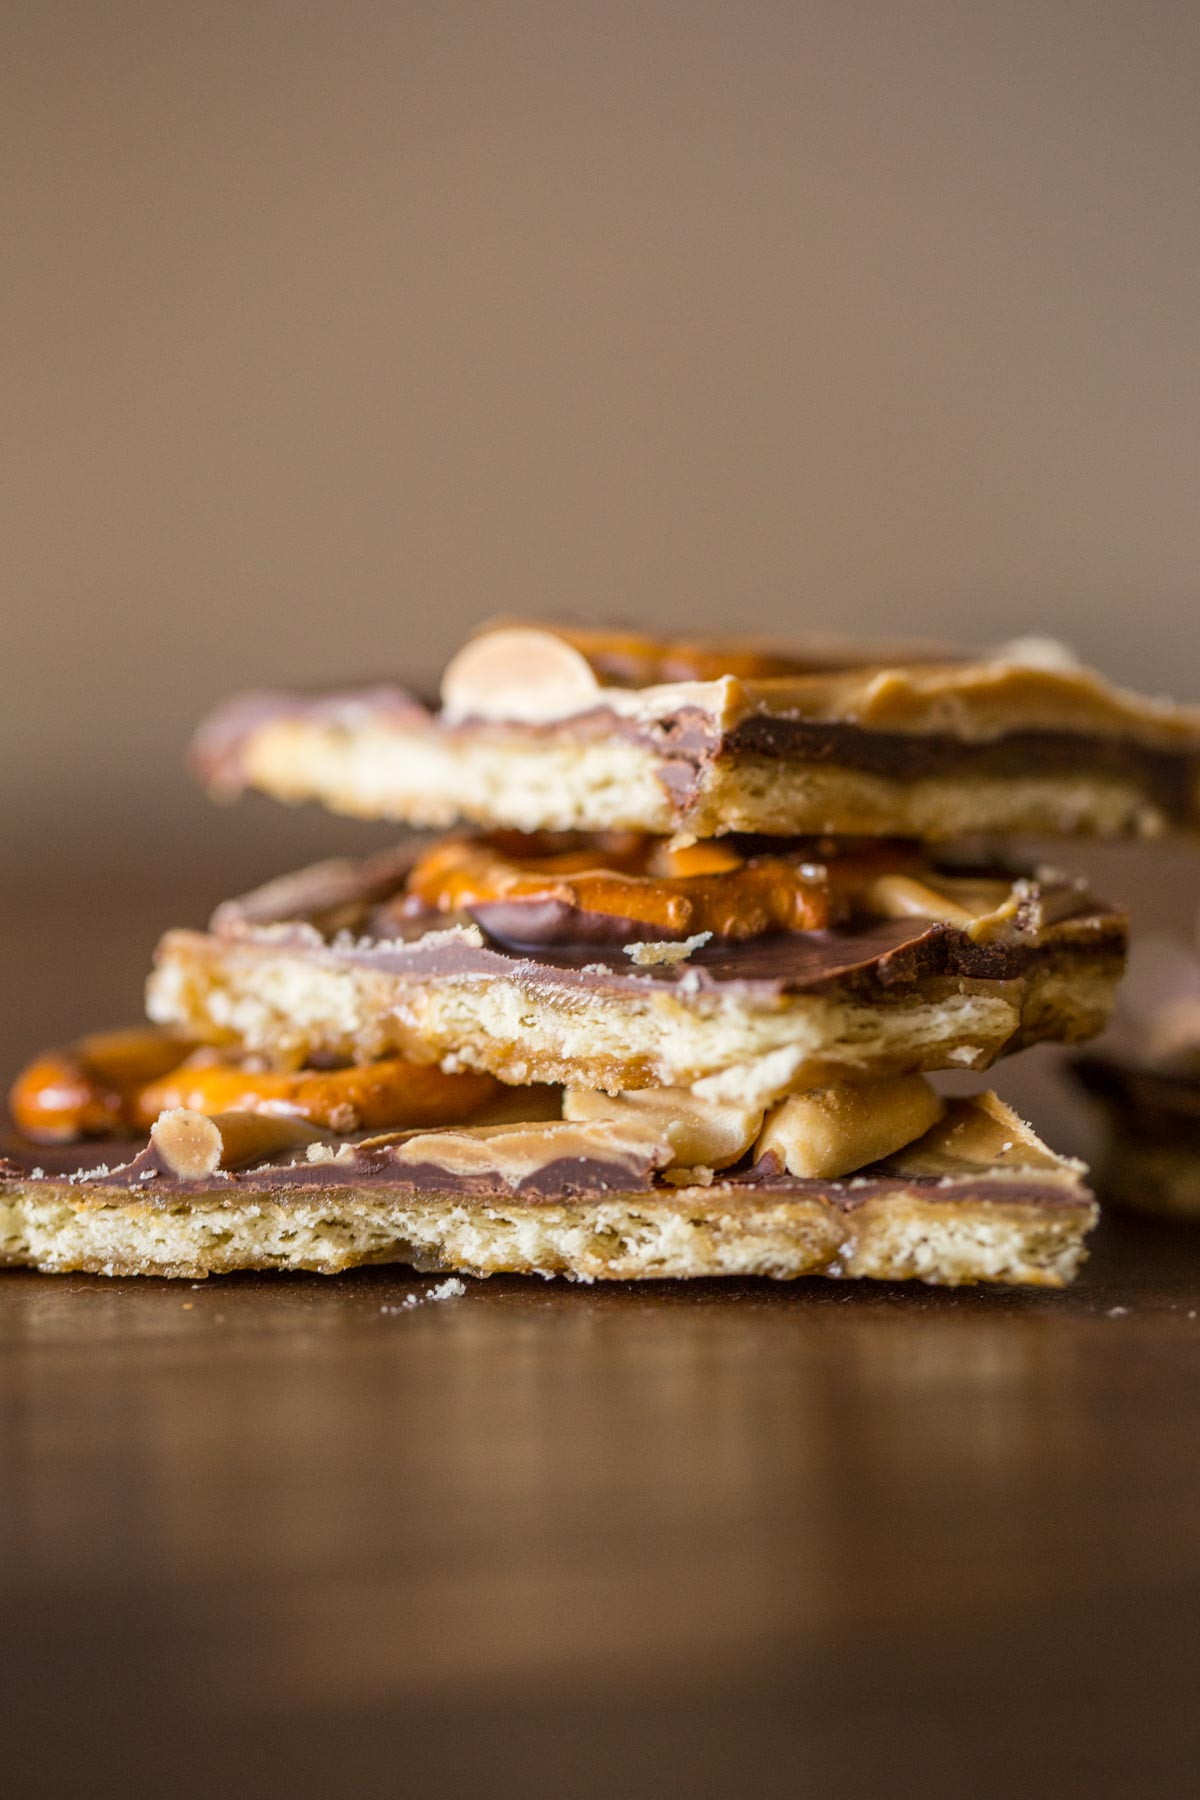 This Take Five Cracker Bark has a butter cracker base with layers of caramel, chocolate, peanut butter, pretzels and peanuts! So delicious and addicting!